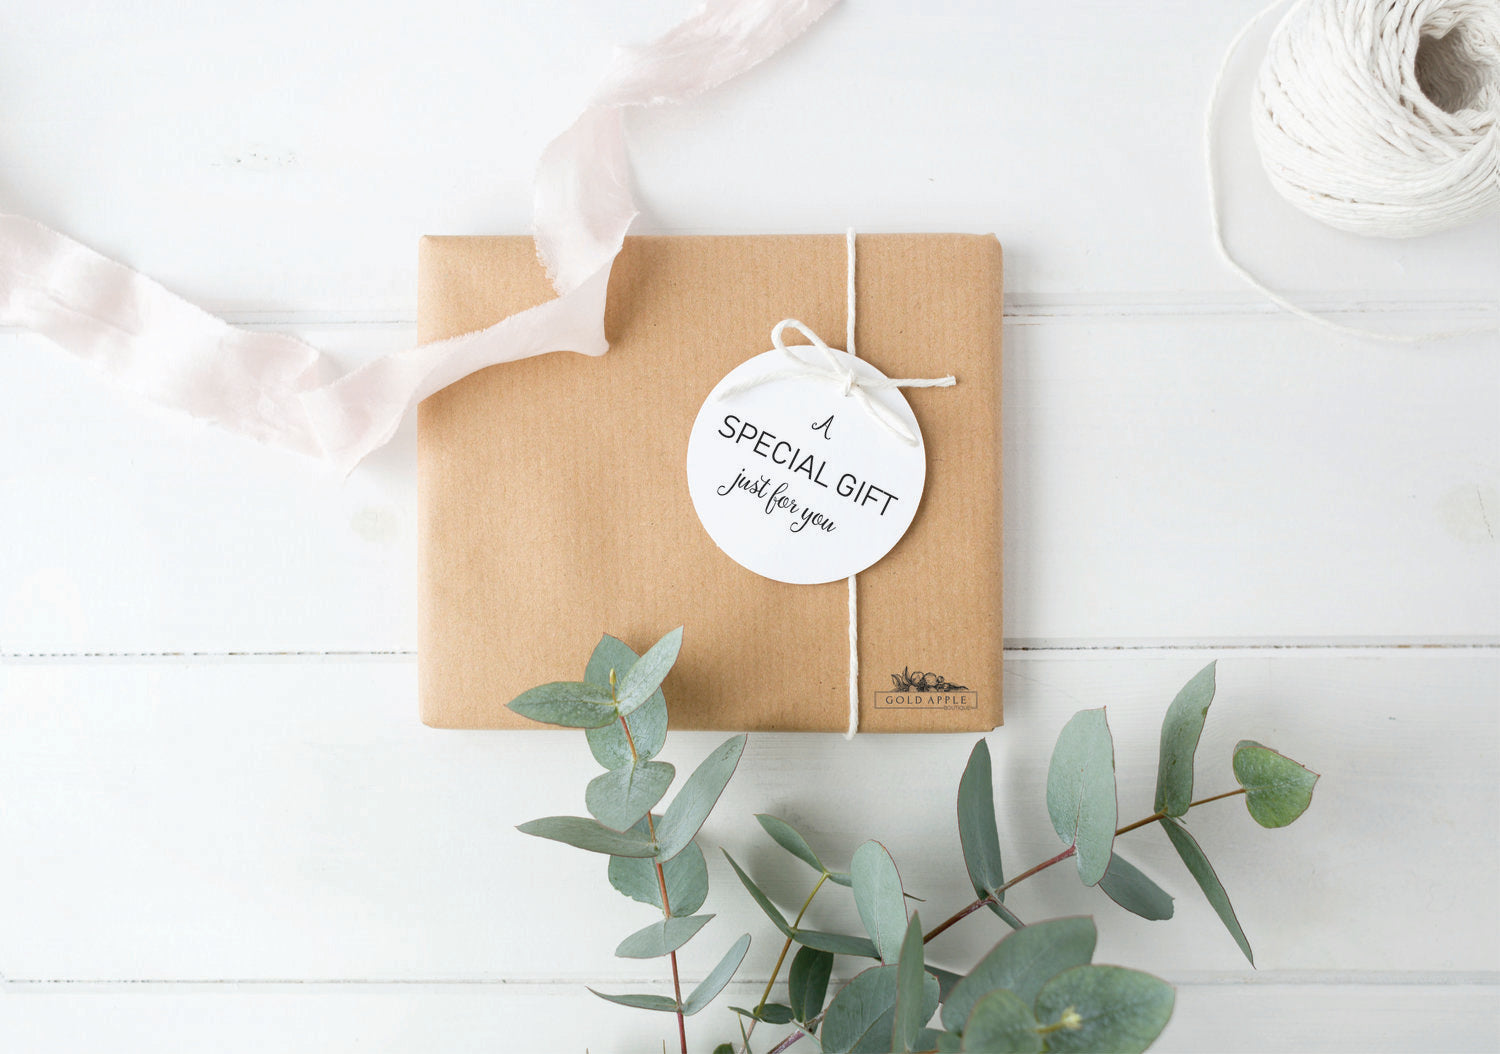 Brown rectangular packaging wrapped in white string with a white tag that reads a special gift just for you. Gift sits on white painted wood surface surrounded by ribbon and eucalyptus branches